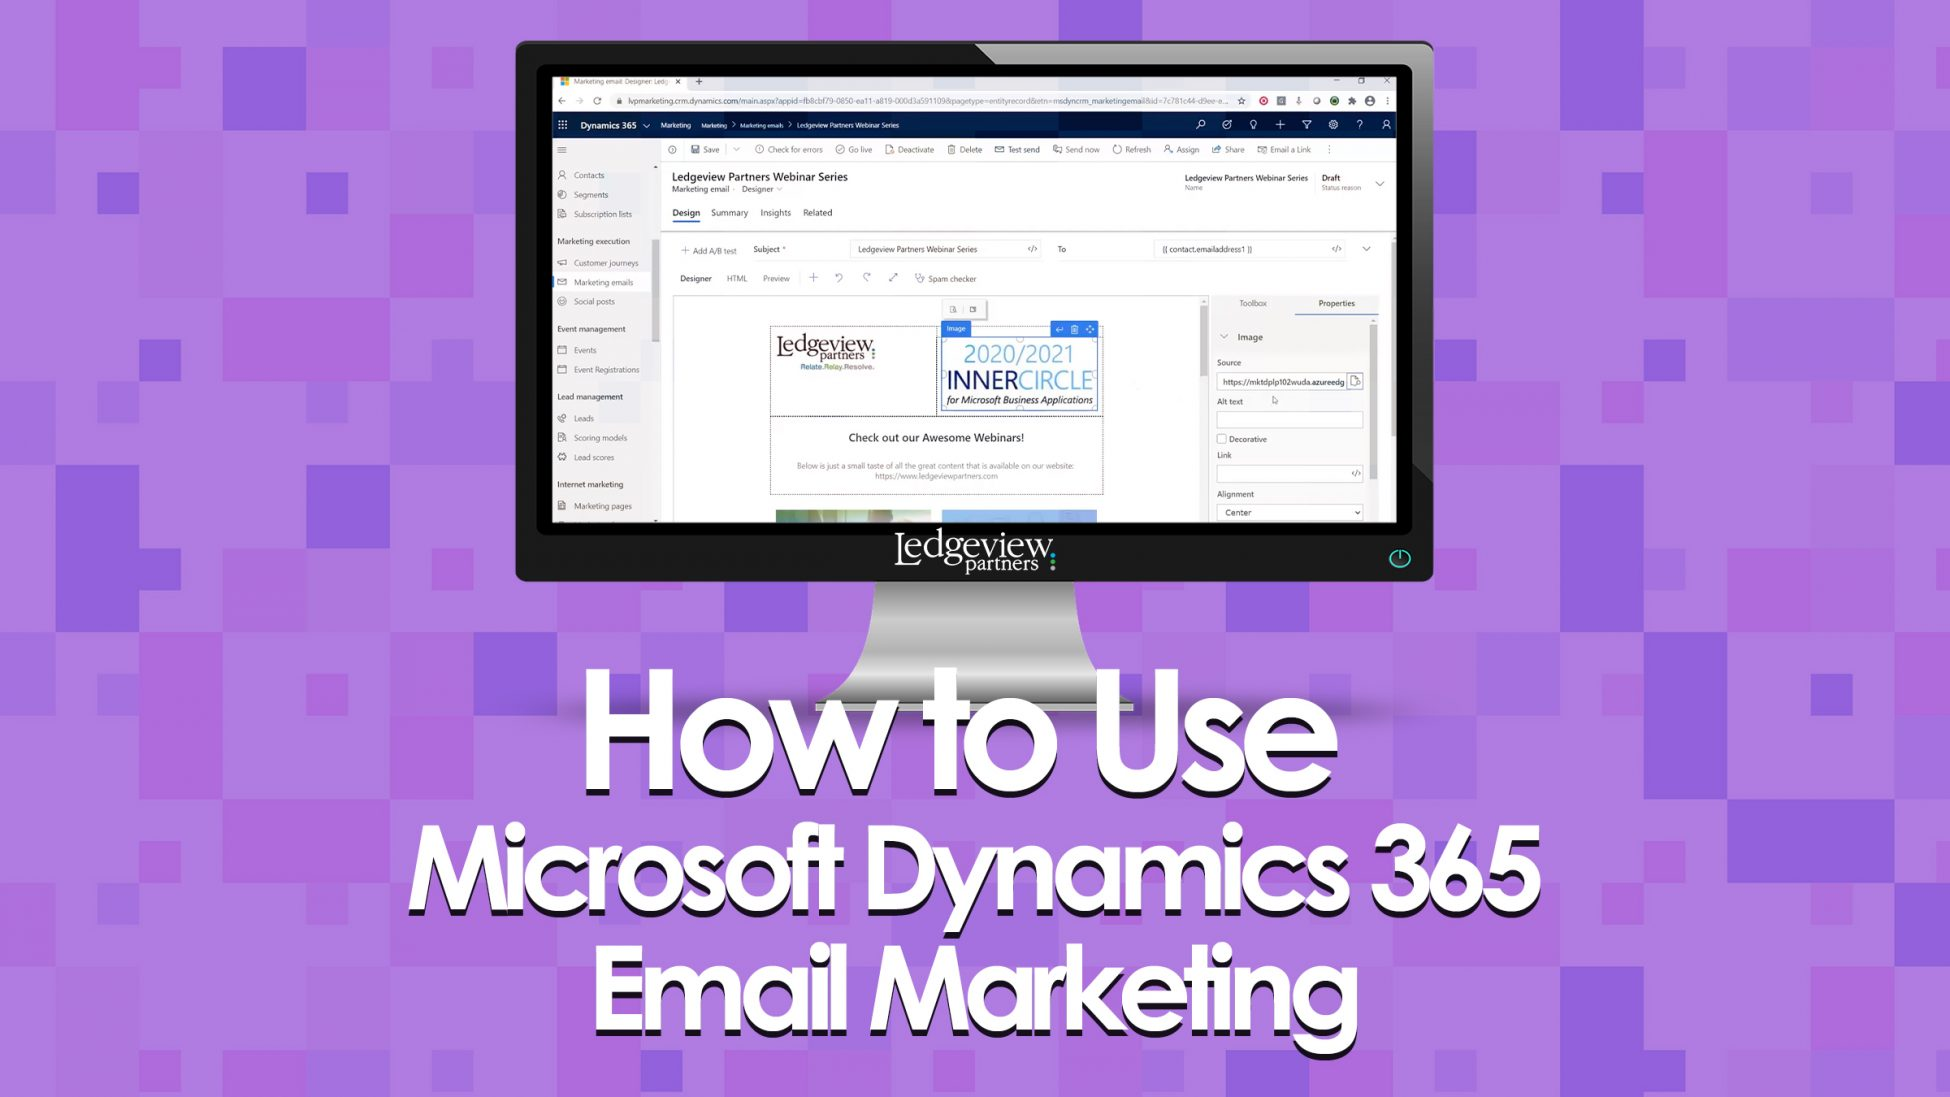 How to Use Microsoft Dynamics 365 Email Marketing